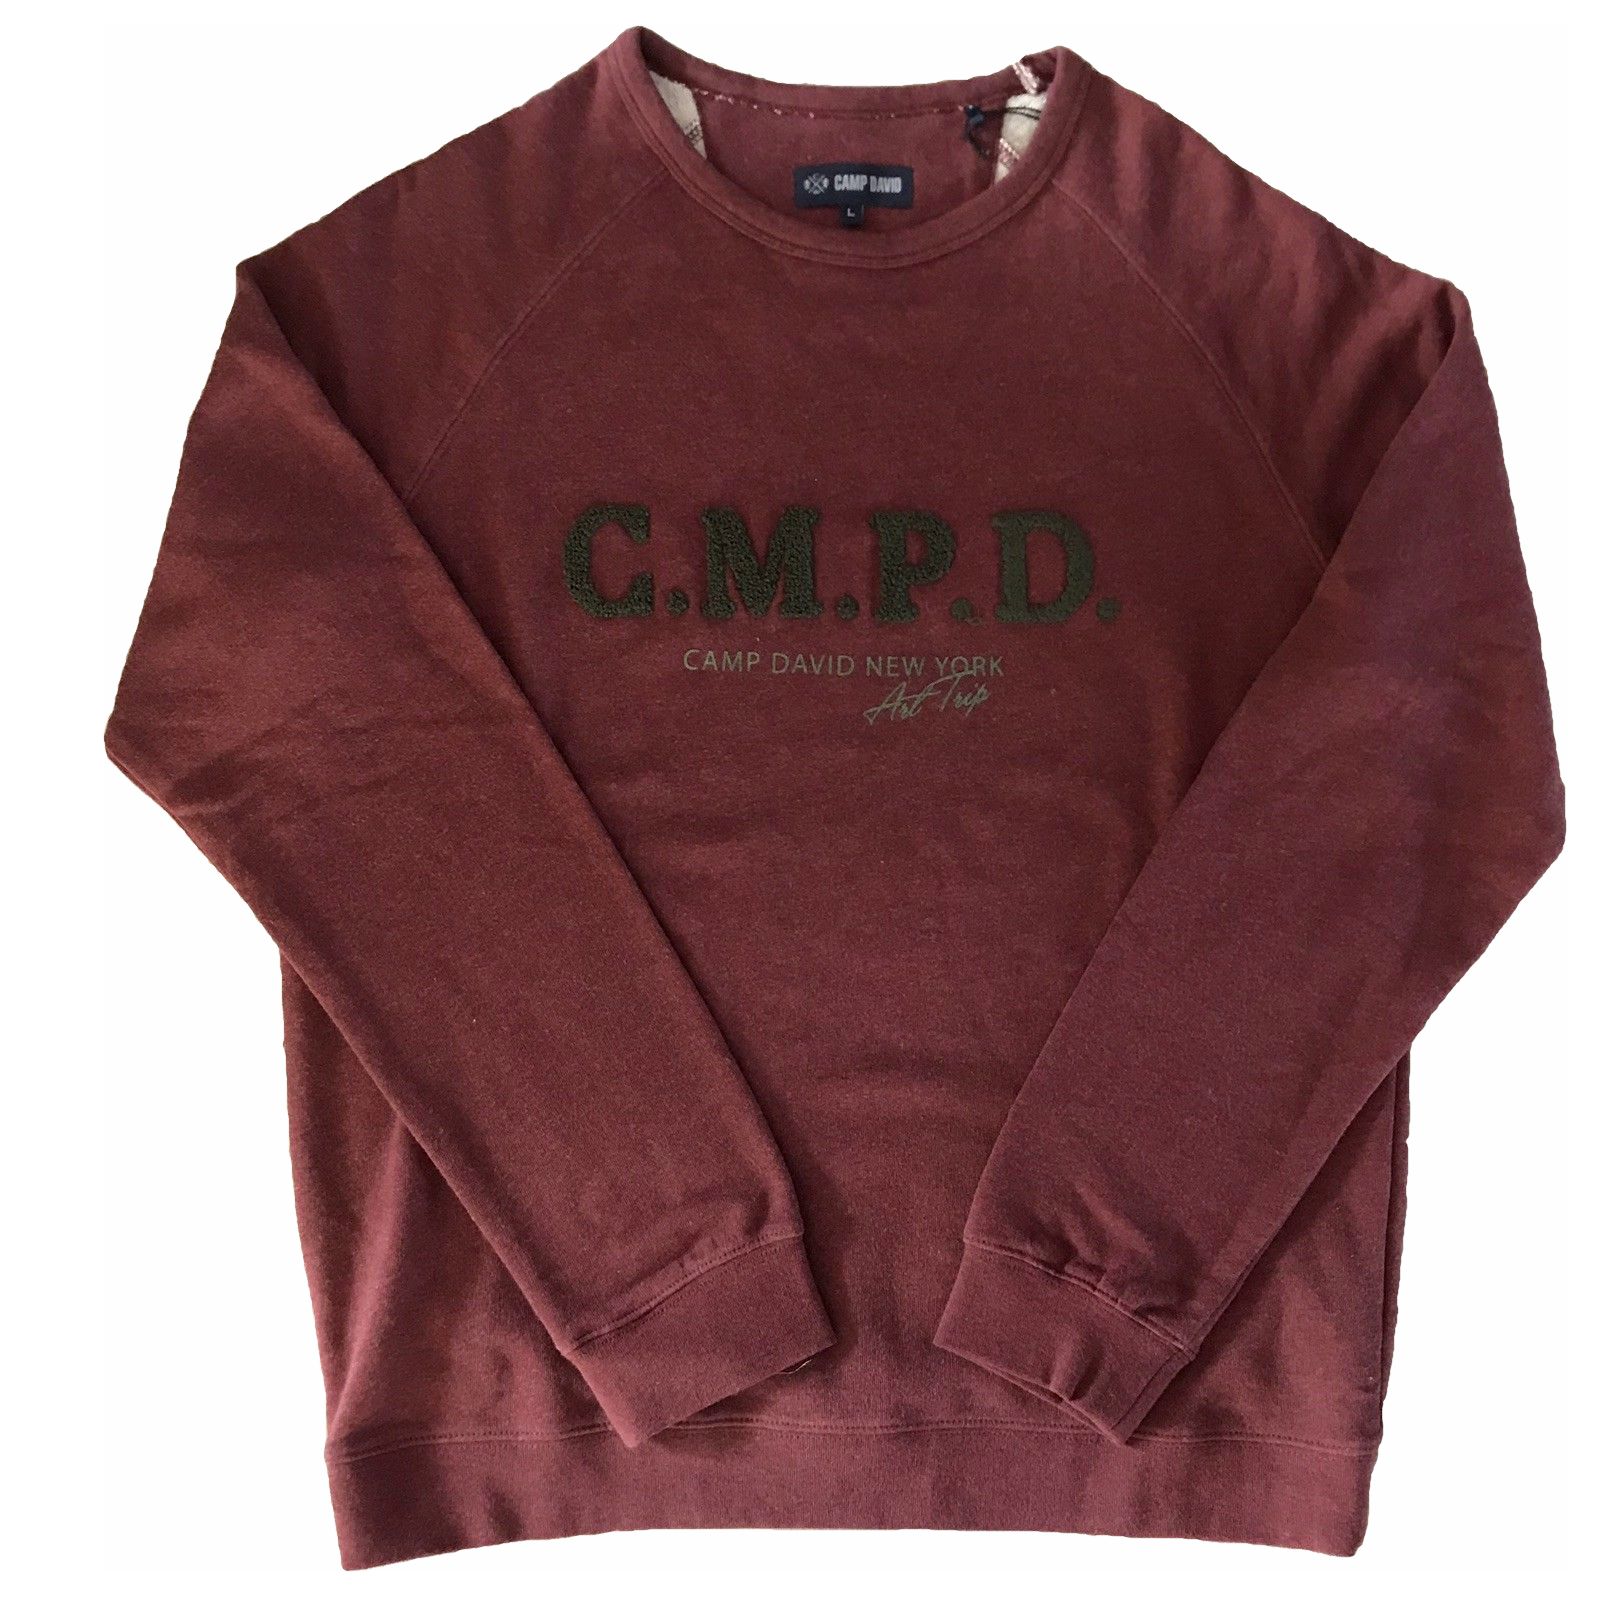 Camp David Herren Sweatshirt Pullover Power Essential langarm Rundhals M - XXXL